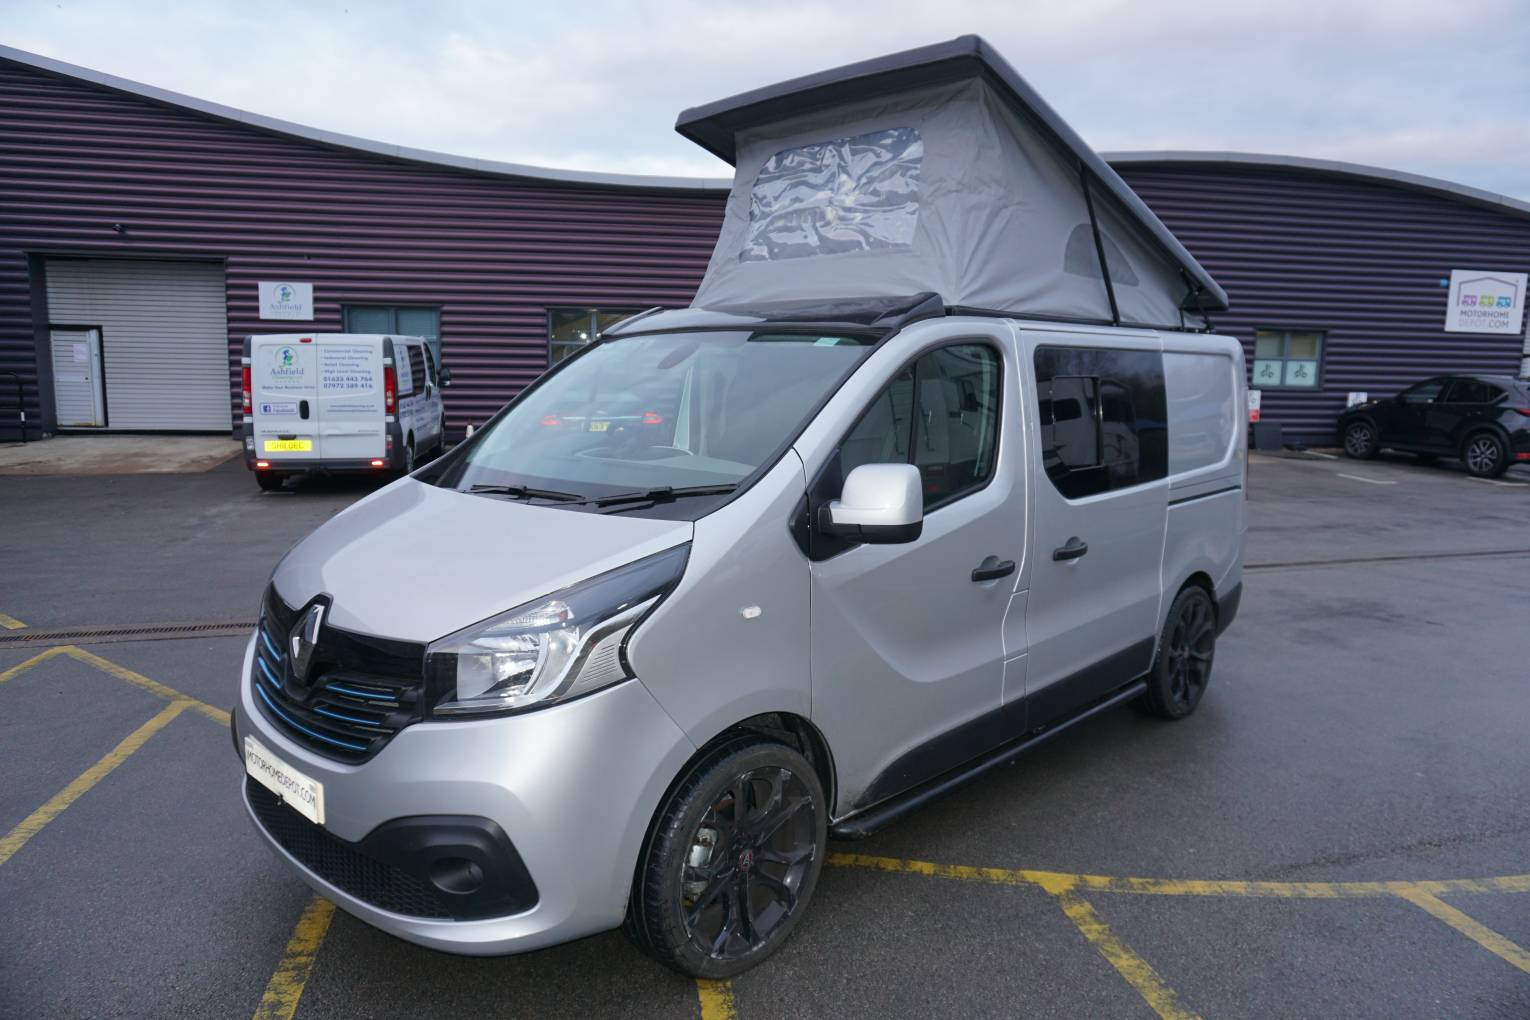 Renault Traffic Tuxford Campers Conversion With Rock And Roll Bed Motorhome For Sale